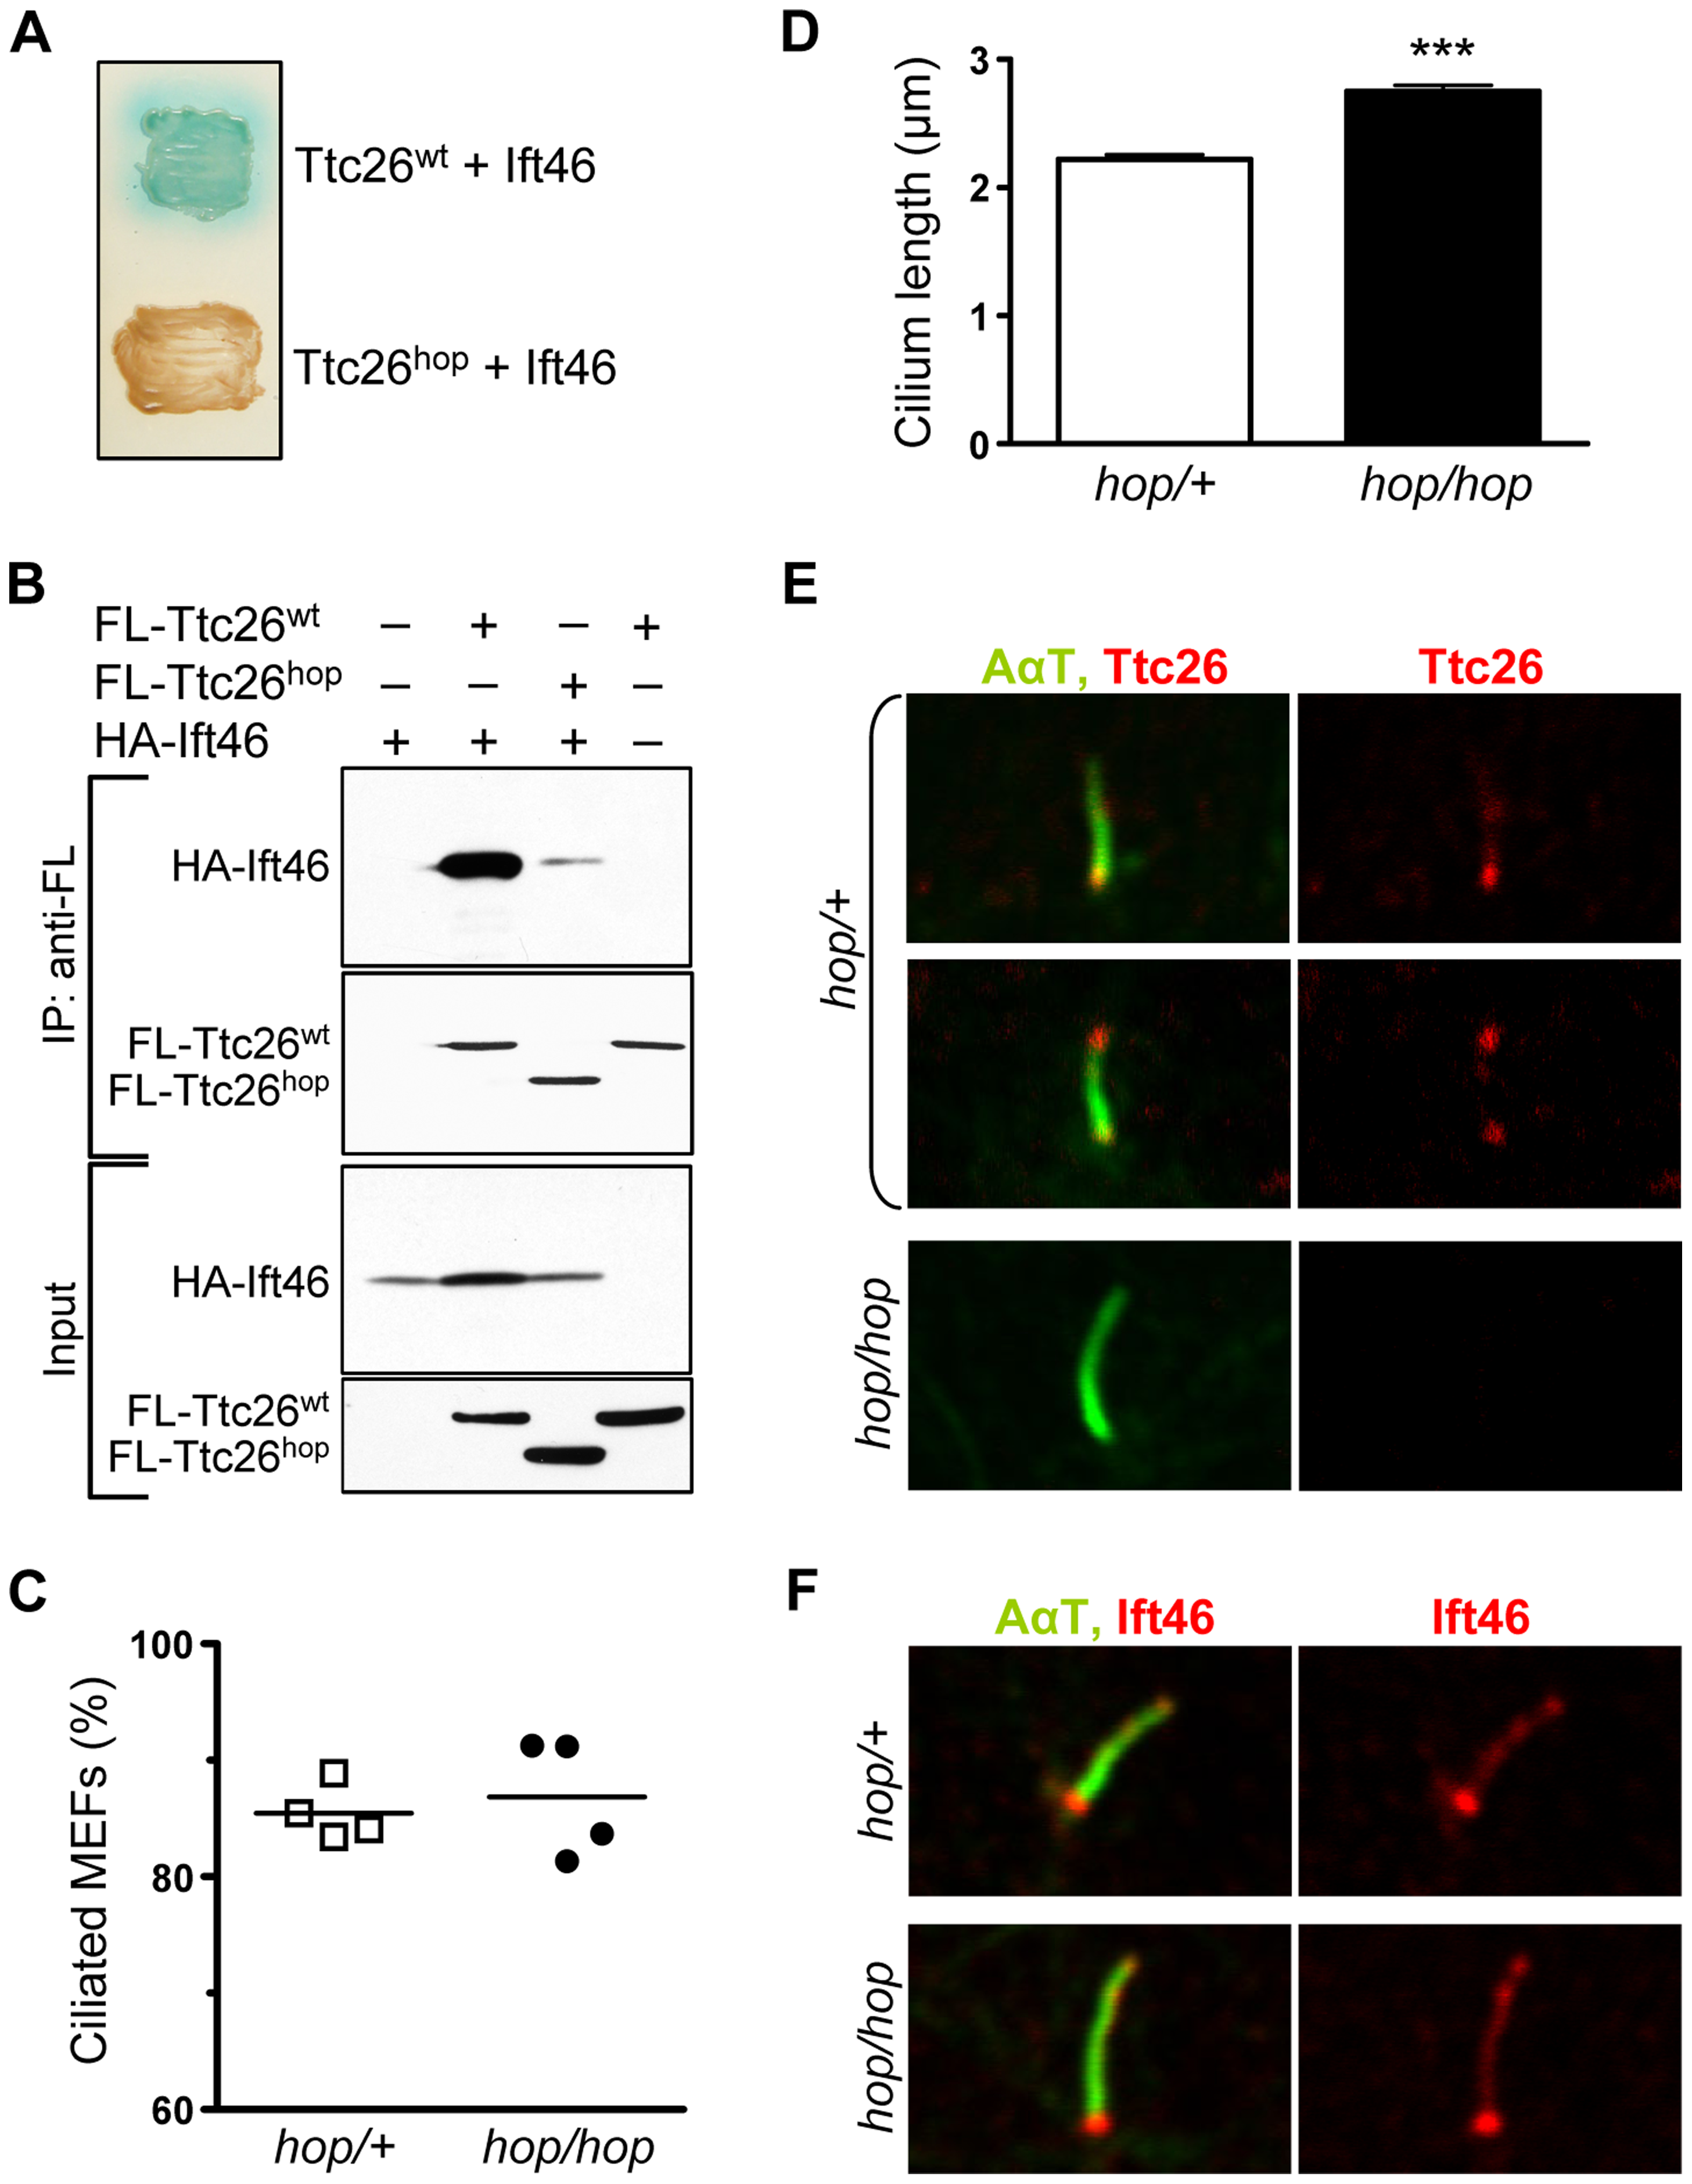 The <i>hop</i> mutation does not impair ciliogenesis or ciliary localization of the Ttc26-interacting protein Ift46.